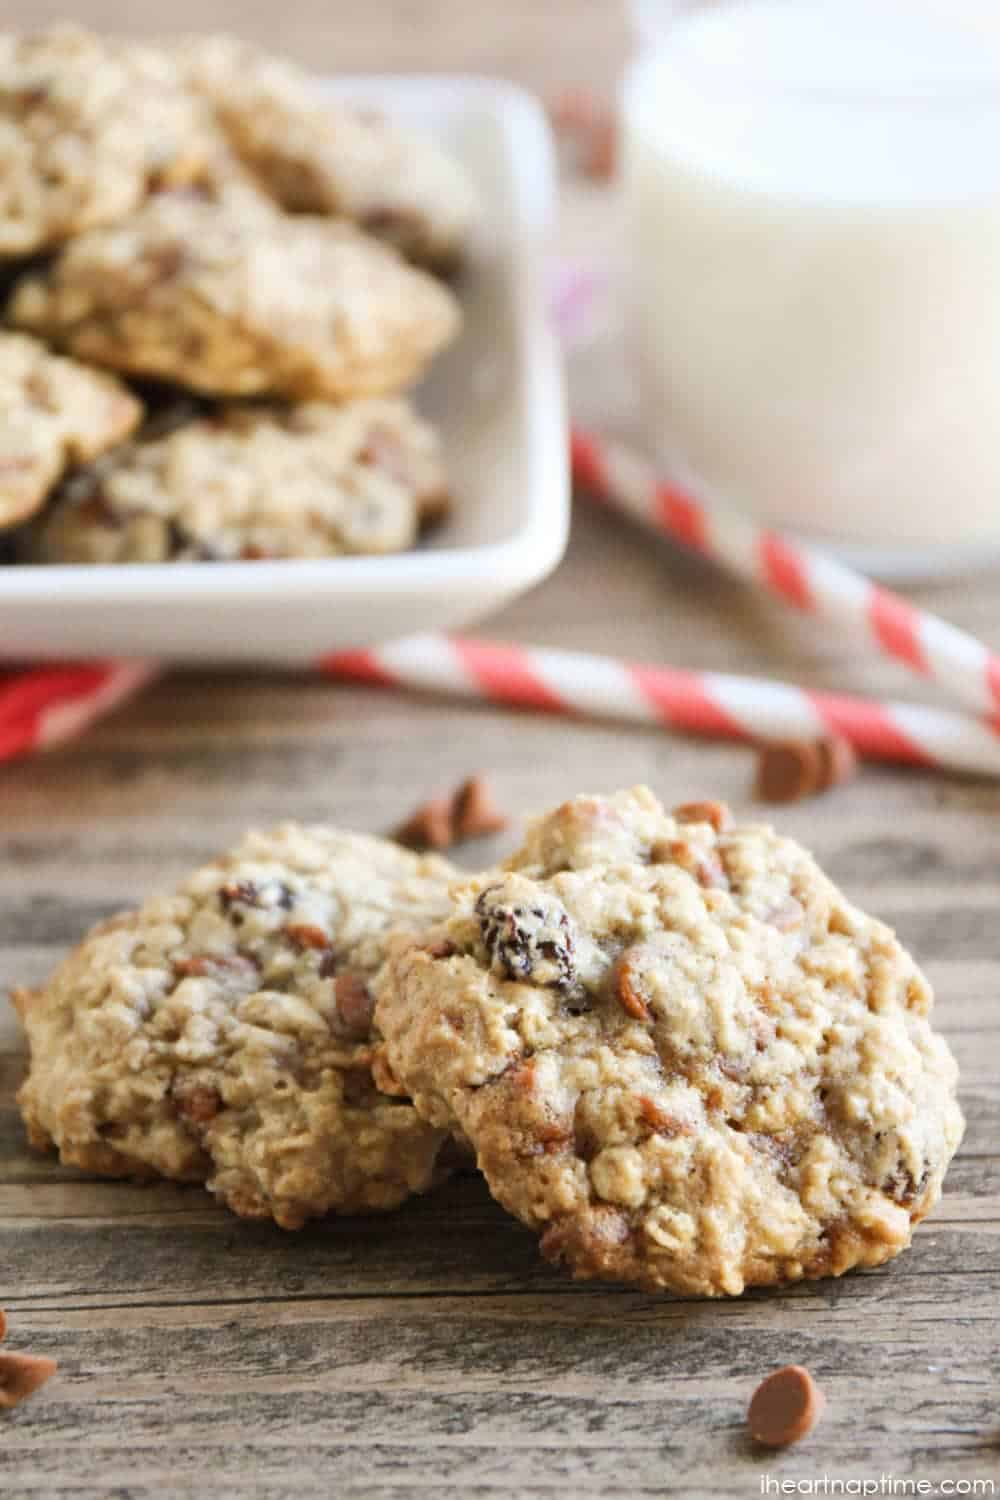 Oatmeal Raisin Cookies with Cinnamon Chips - these cookies are seriously divine! The cinnamon chips add the perfect touch to the classic oatmeal cookie.